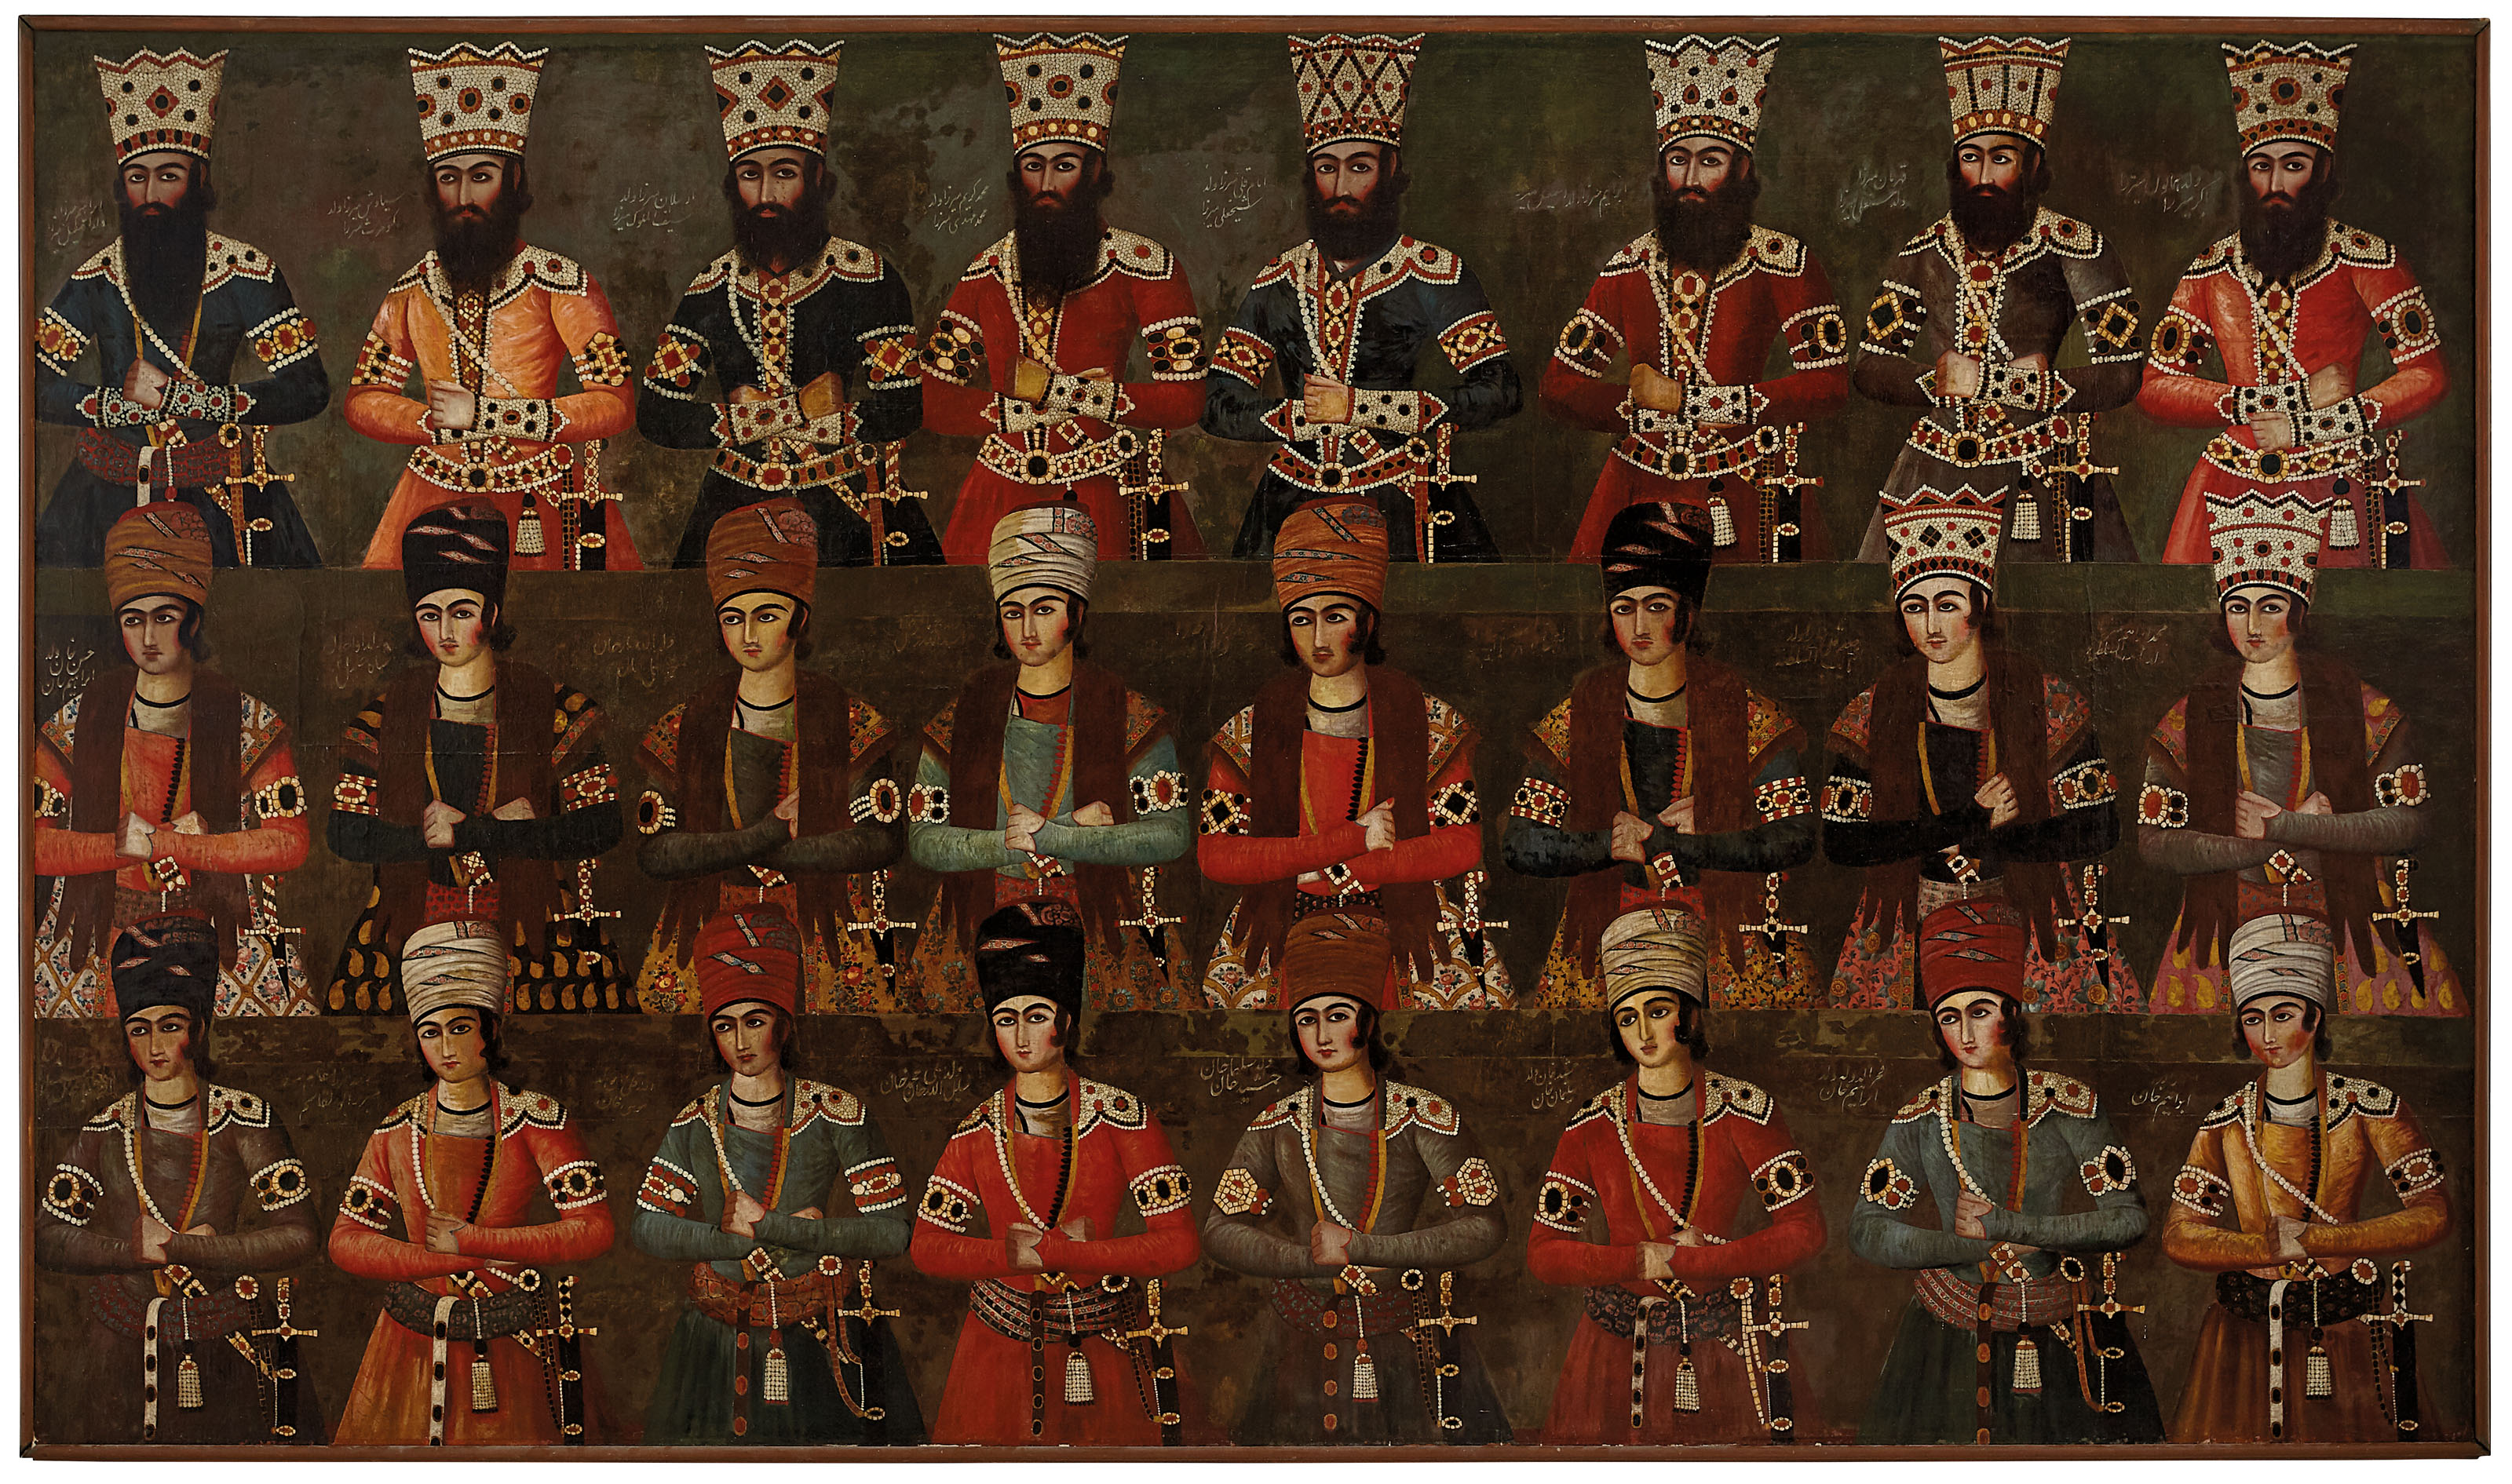 A magnificent Qajar group portrait, attributable To 'Abdallah Khan Naqqashbashi (active 1800-1850), Tehran or environs, Iran, circa 1810-20.101 x 174 in (256.5 x 442 cm). Estimate £1,000,000-1,500,000. Offered inArt of the Islamic and Indian Worlds including Oriental Rugs and Carpetson 1 April 2021 at Christie's in London